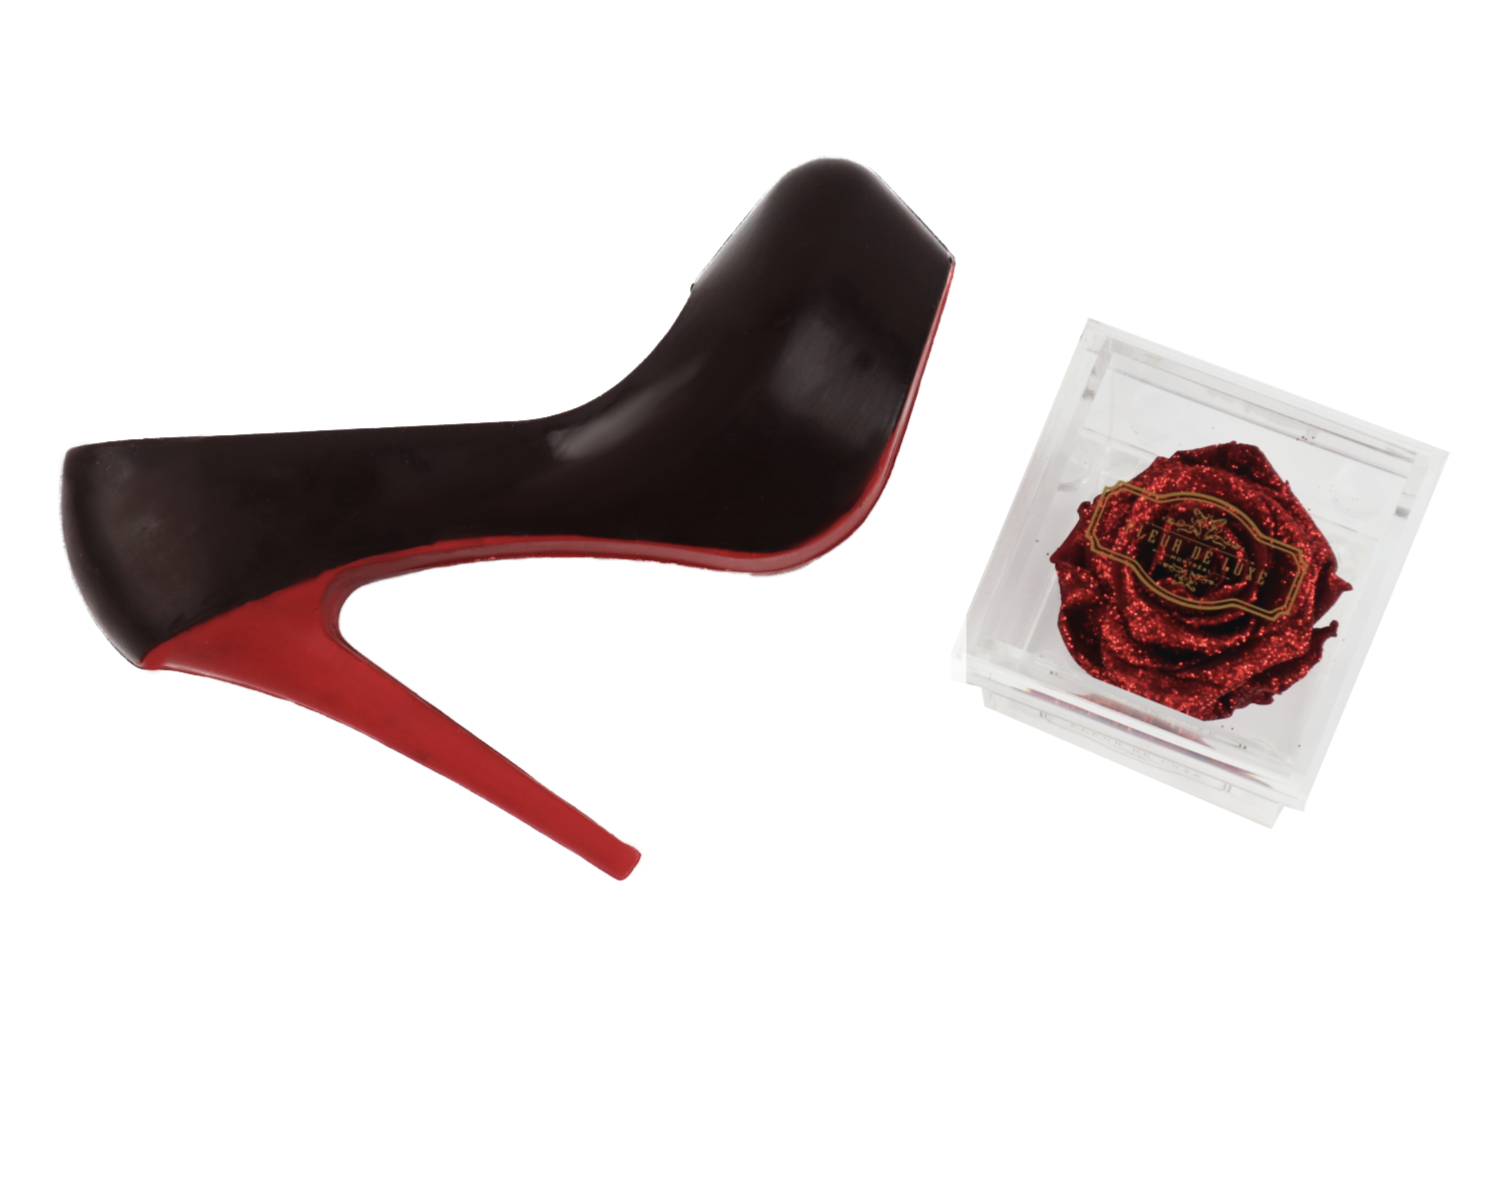 **Choco Louboutin & Eternal RED Rose in acrylic box